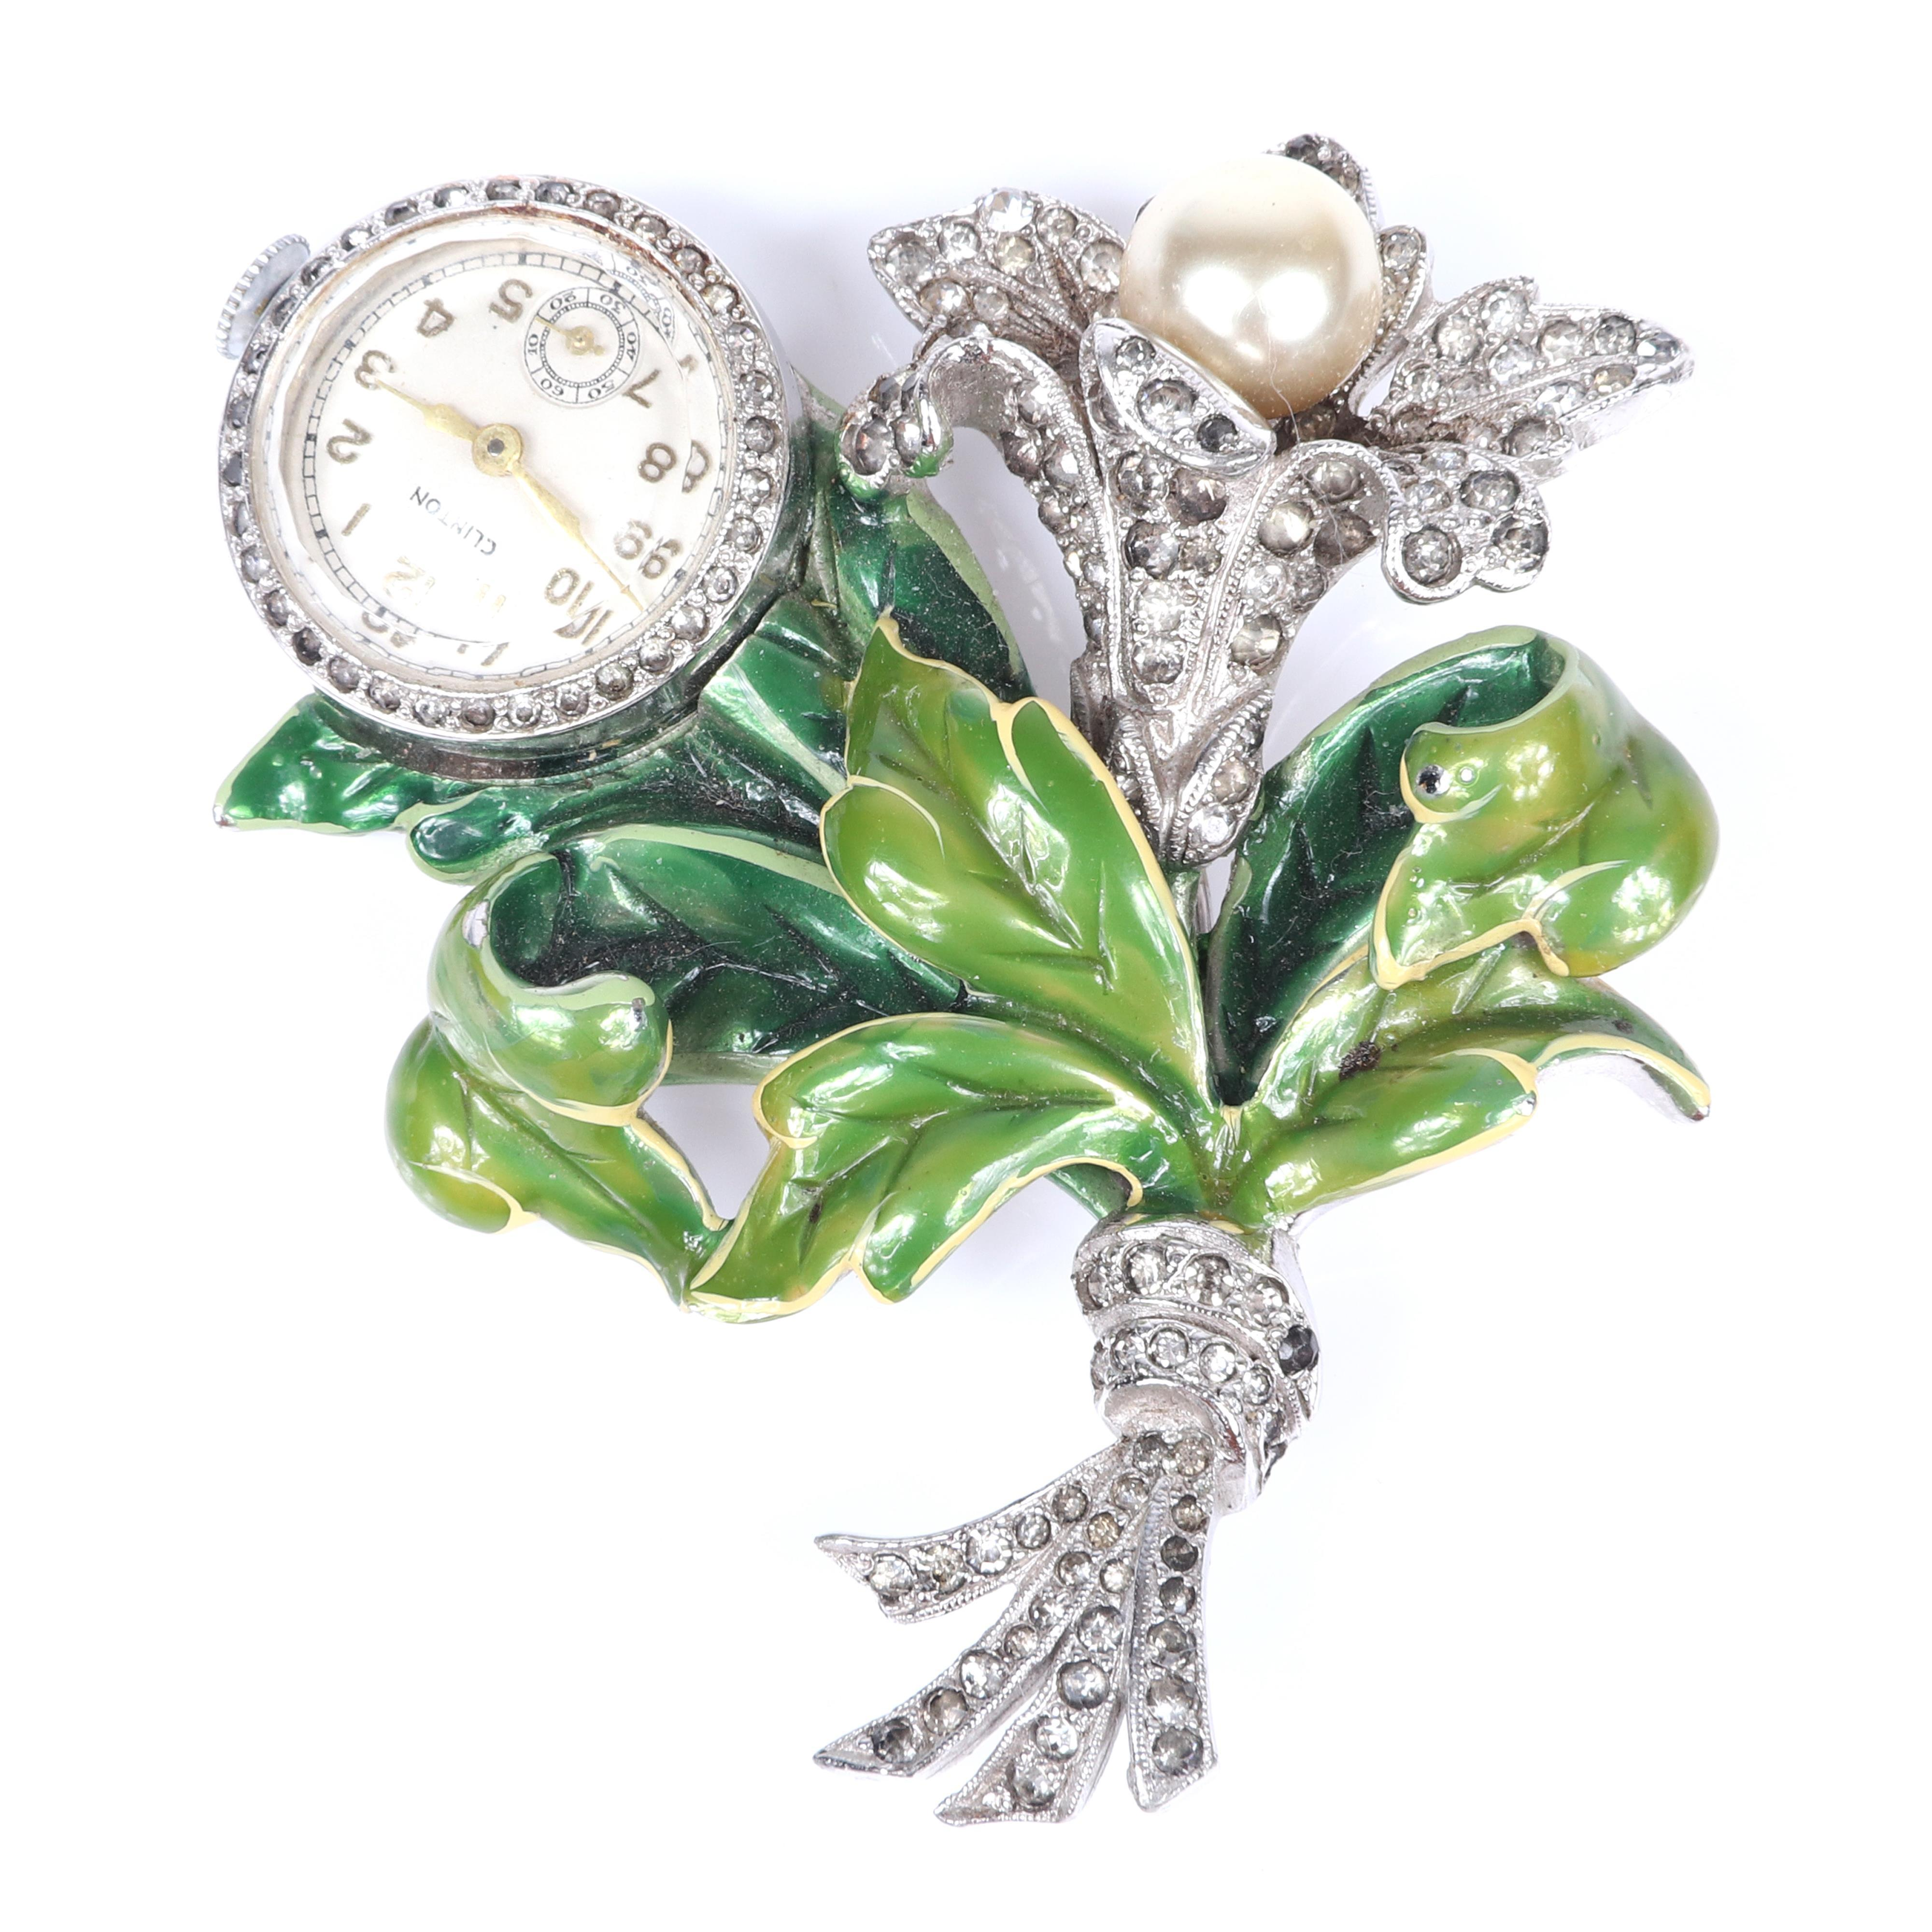 Vintage 1940s Clinton figural flower bouquet lapel watch pin brooch with green enamel leaves, pave and faux pearl. 100-150